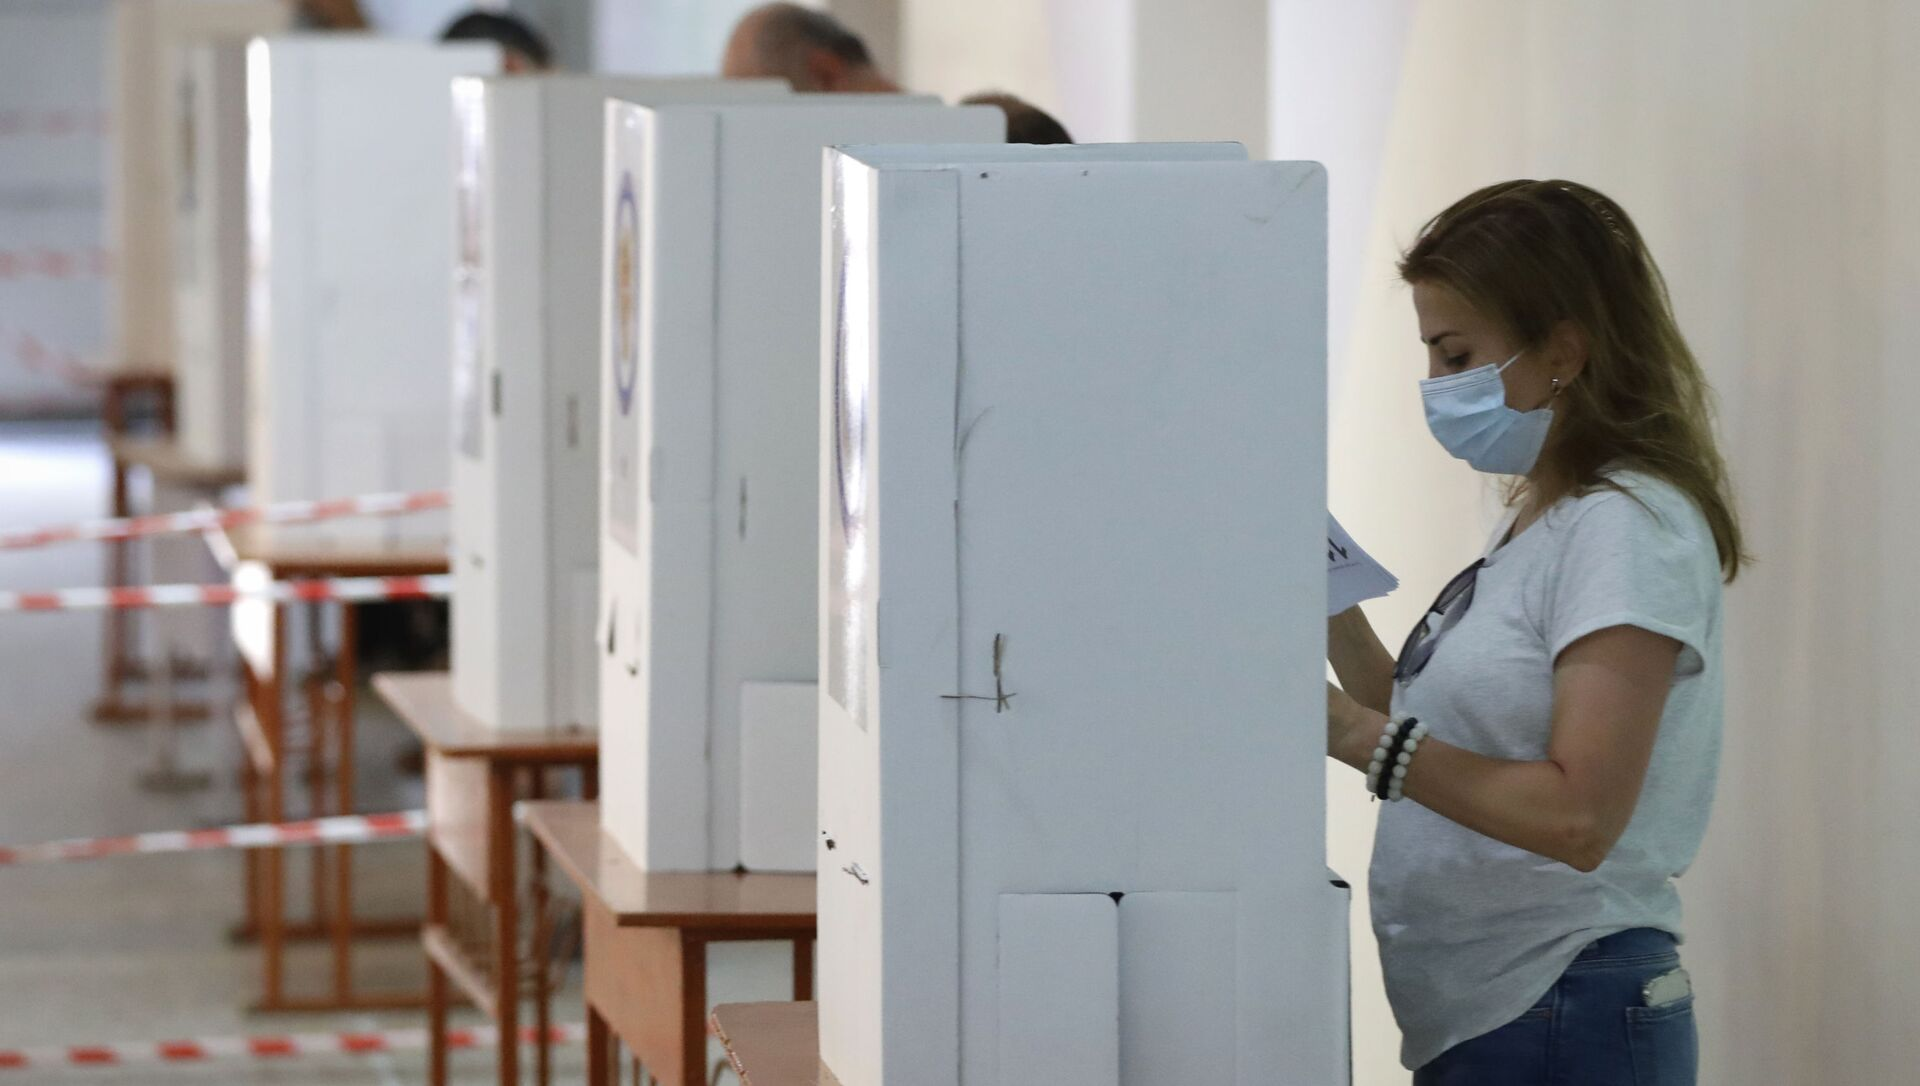 People read their ballot papers at a polling station during a parliamentary election in Yerevan, Armenia, Sunday, 20 June 2021. Armenians are voting in a national election after months of tensions over last year's defeat in fighting against Azerbaijan over the separatist region of Nagorno-Karabakh. - Sputnik International, 1920, 20.06.2021